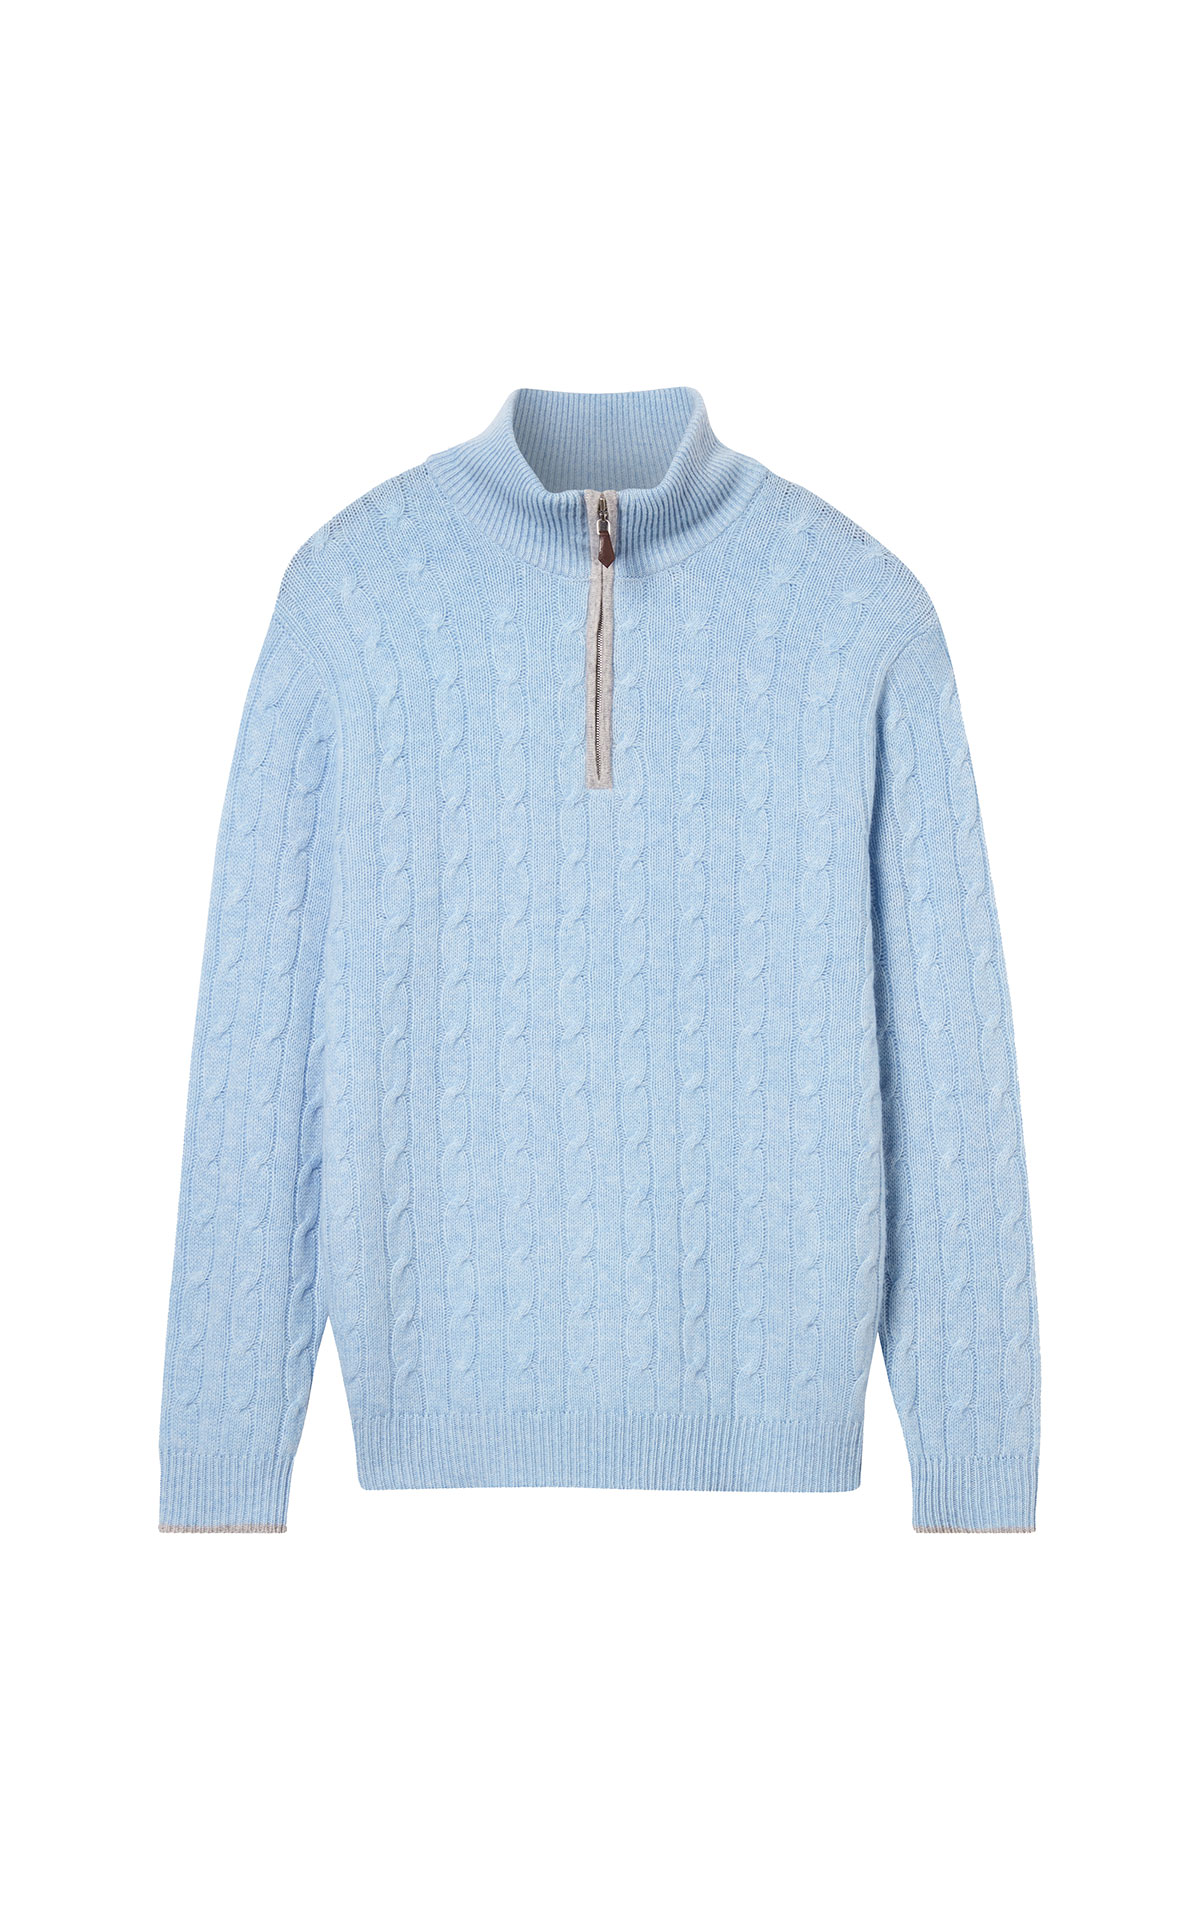 N. Peal Cable 1/2 zip sweater from Bicester Village